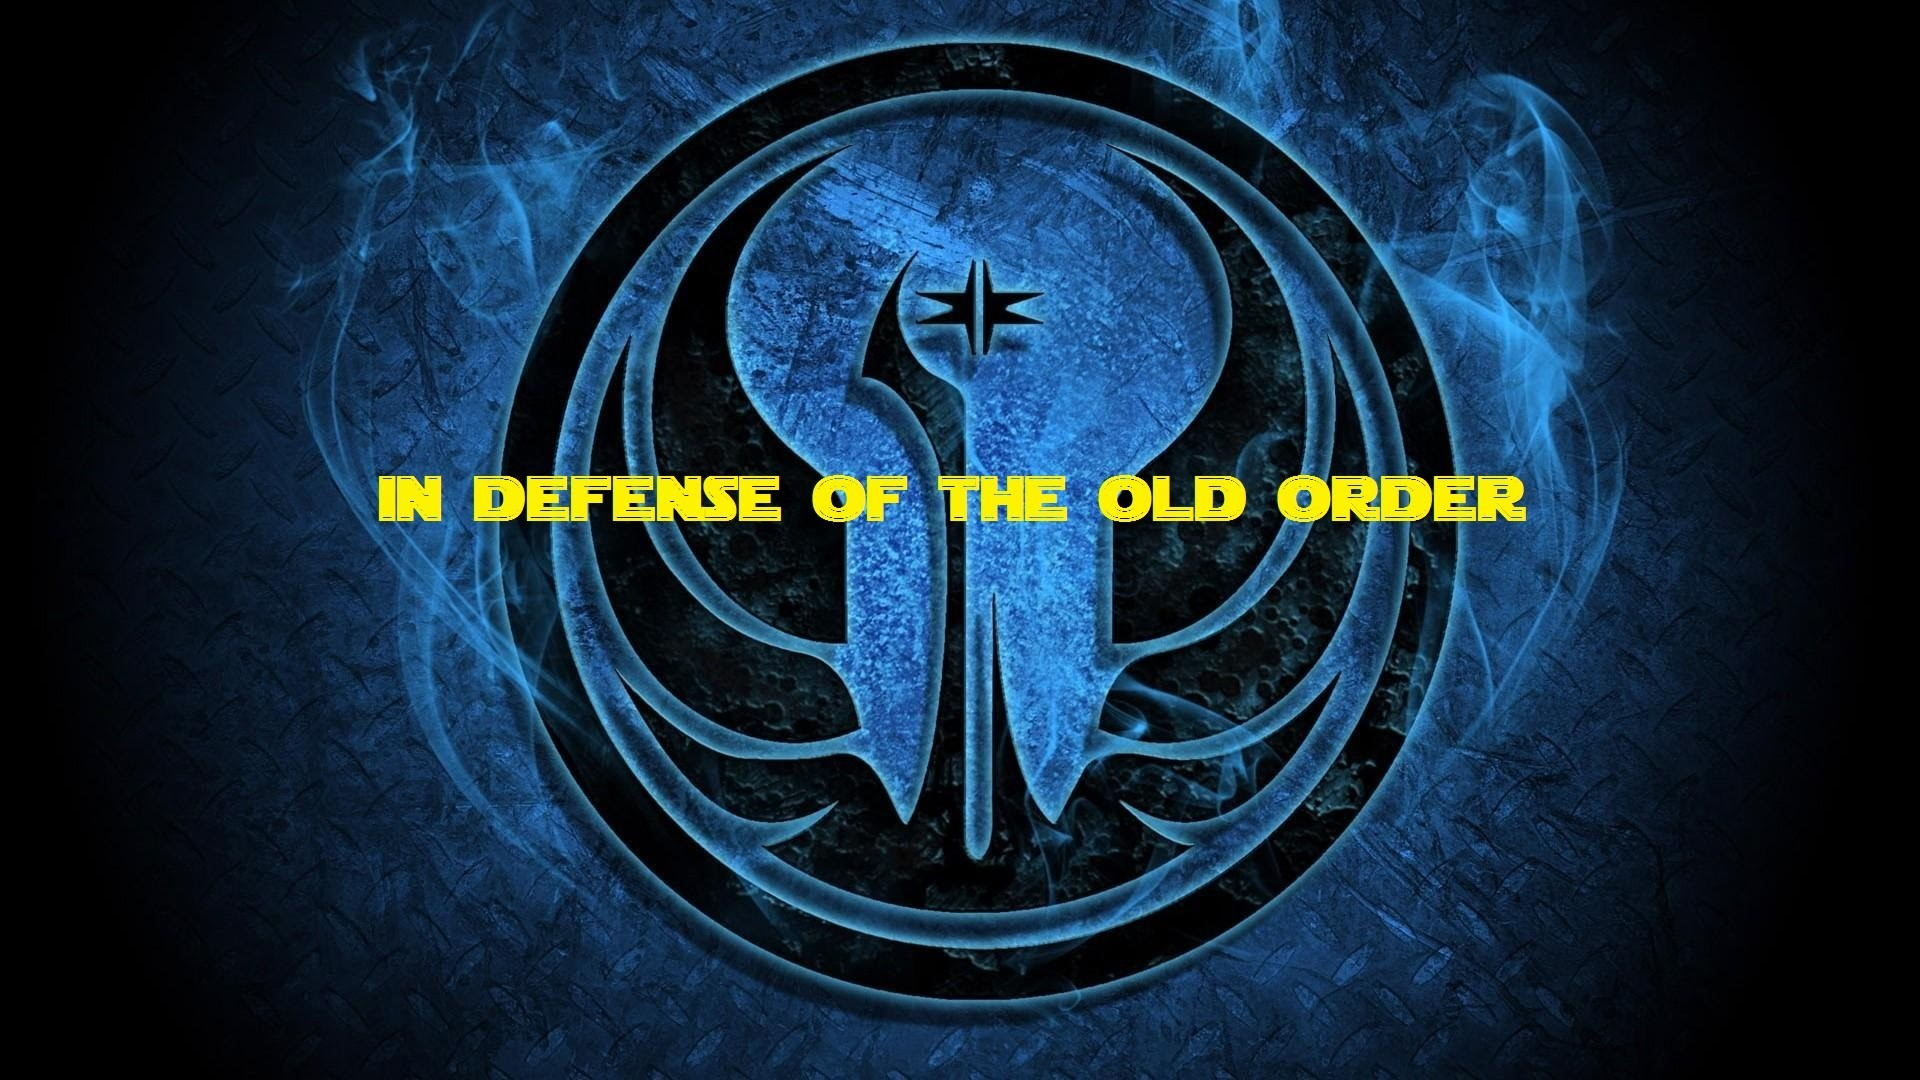 My Defense for the Old Jedi Order